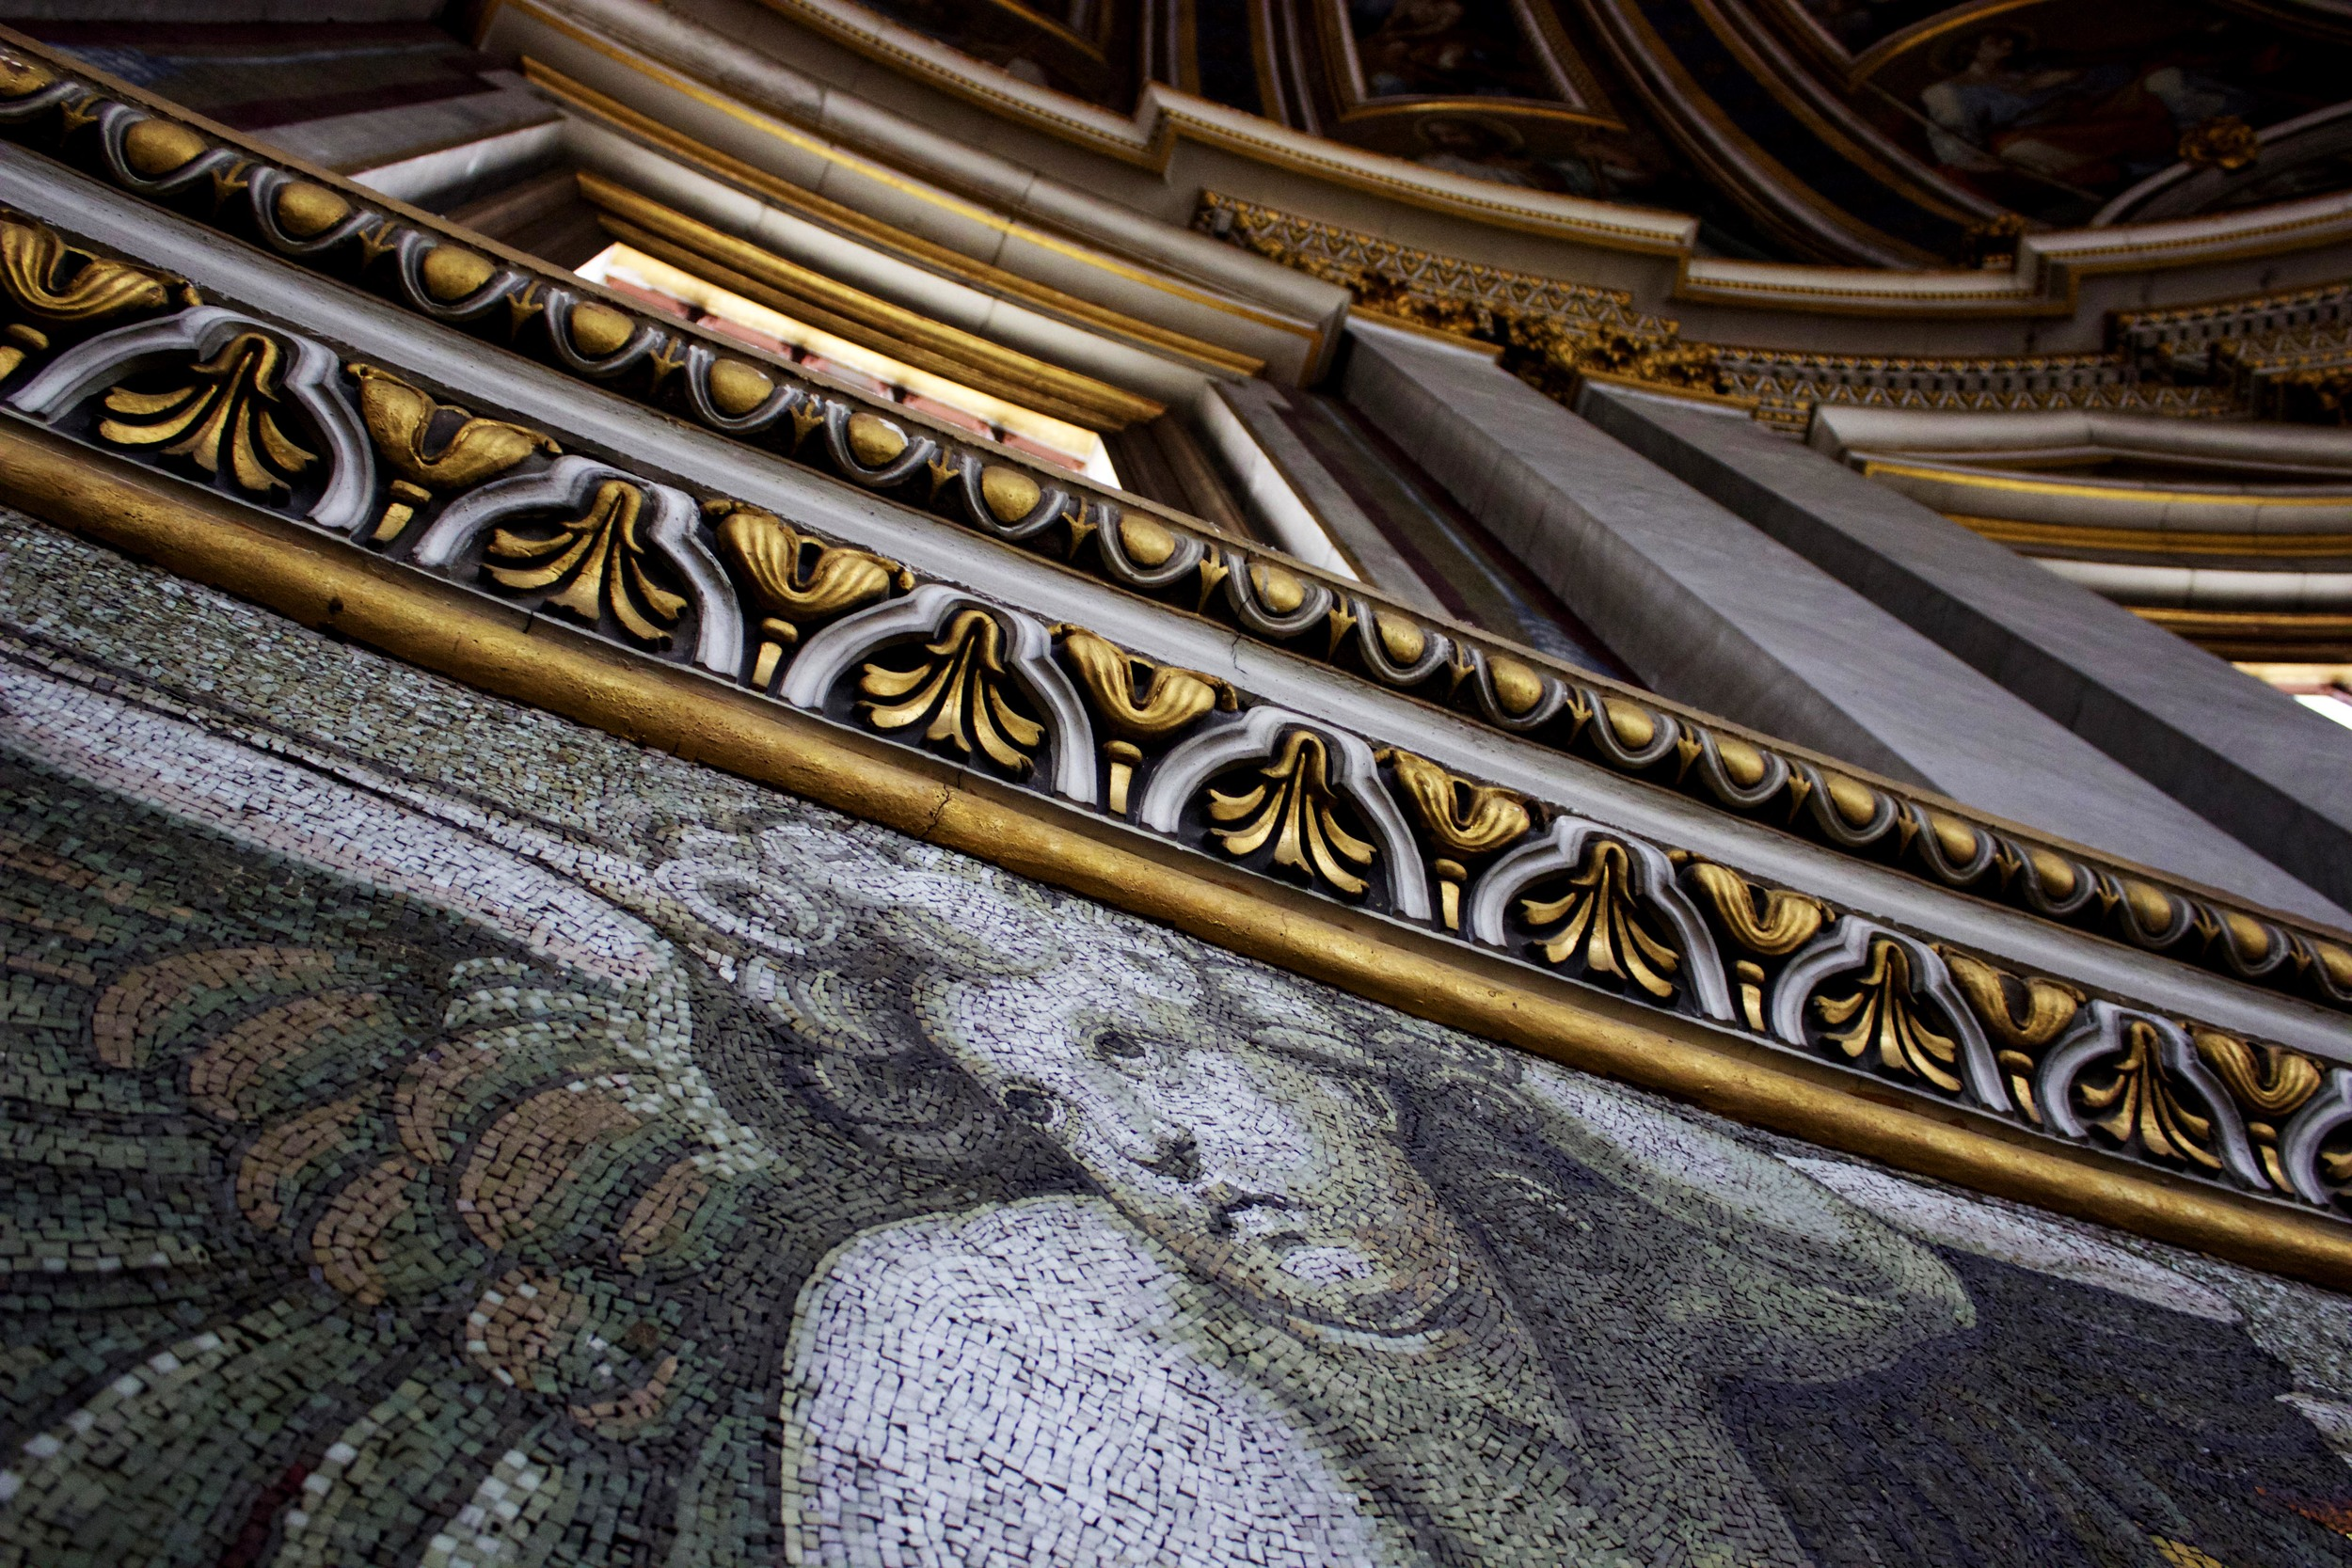 ^ Beautiful mosaics on the walls walking up to the top of the dome. So much detail!